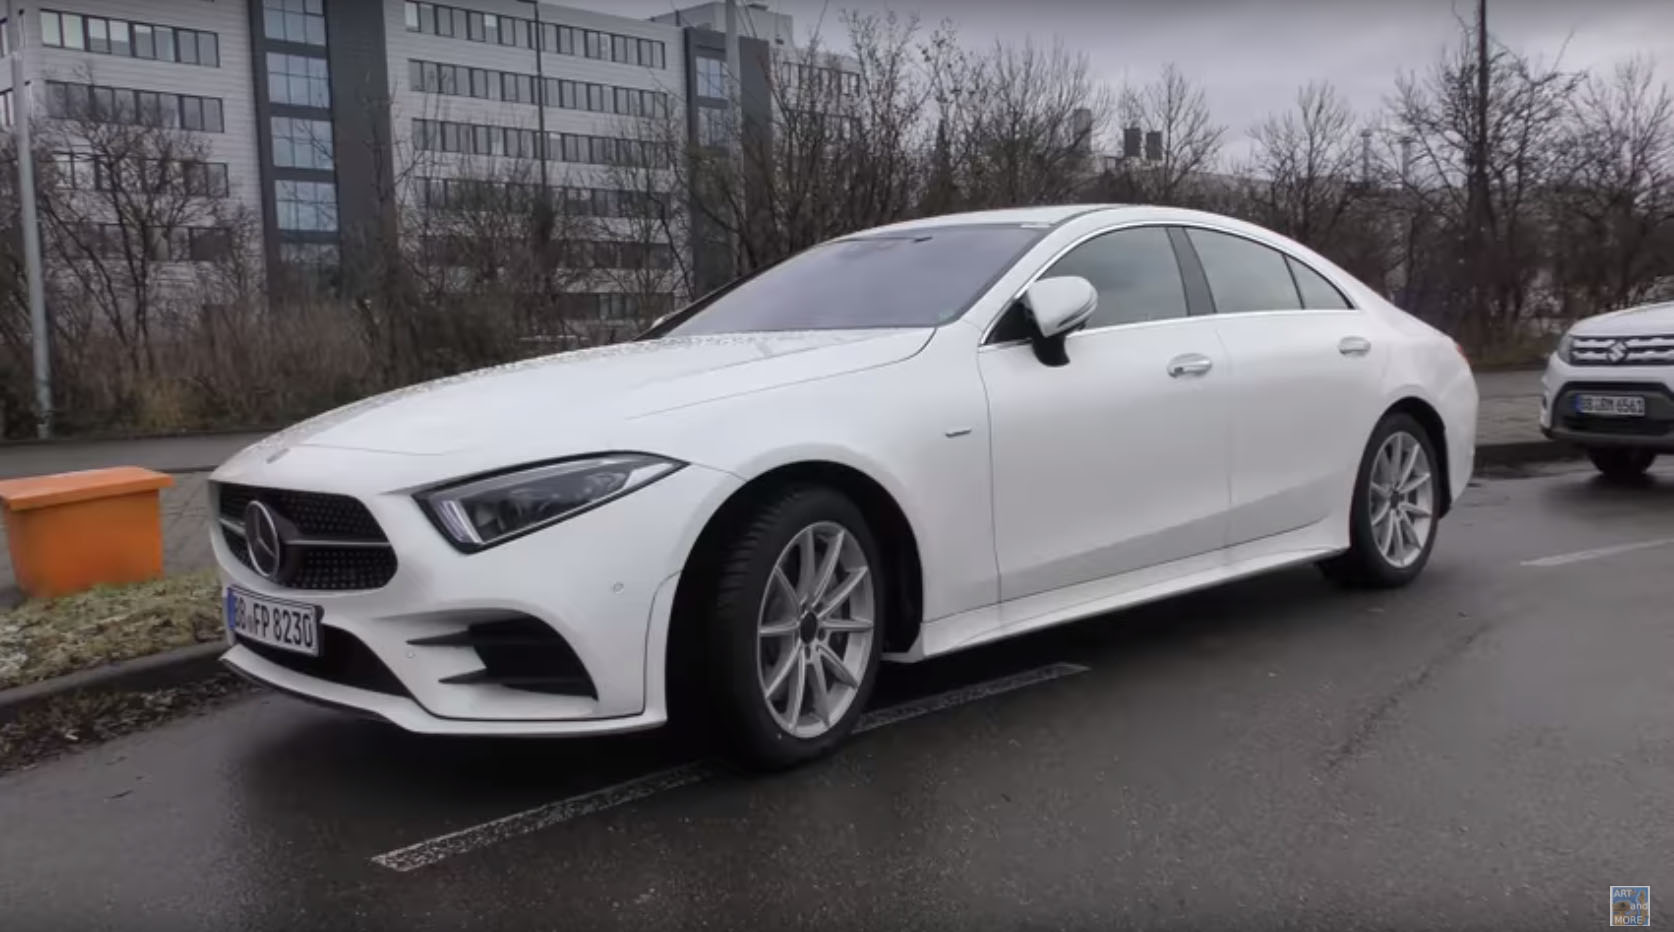 2018 mercedes benz cls 350 looks underwhelming in white autoevolution. Black Bedroom Furniture Sets. Home Design Ideas